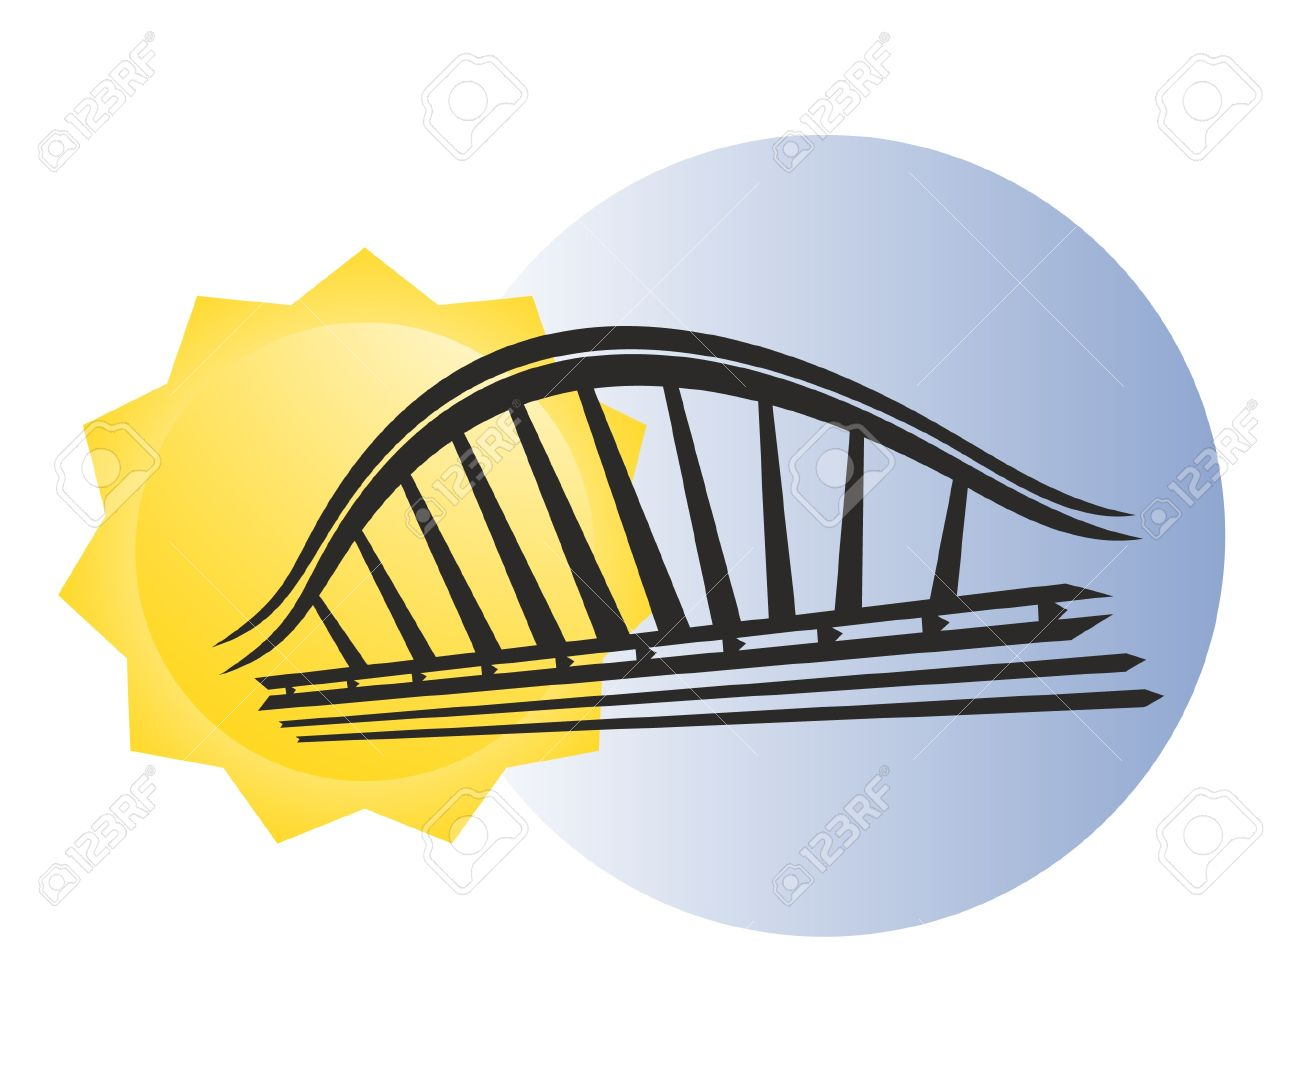 Modern Bridge Design Royalty Free Cliparts, Vectors, And Stock.